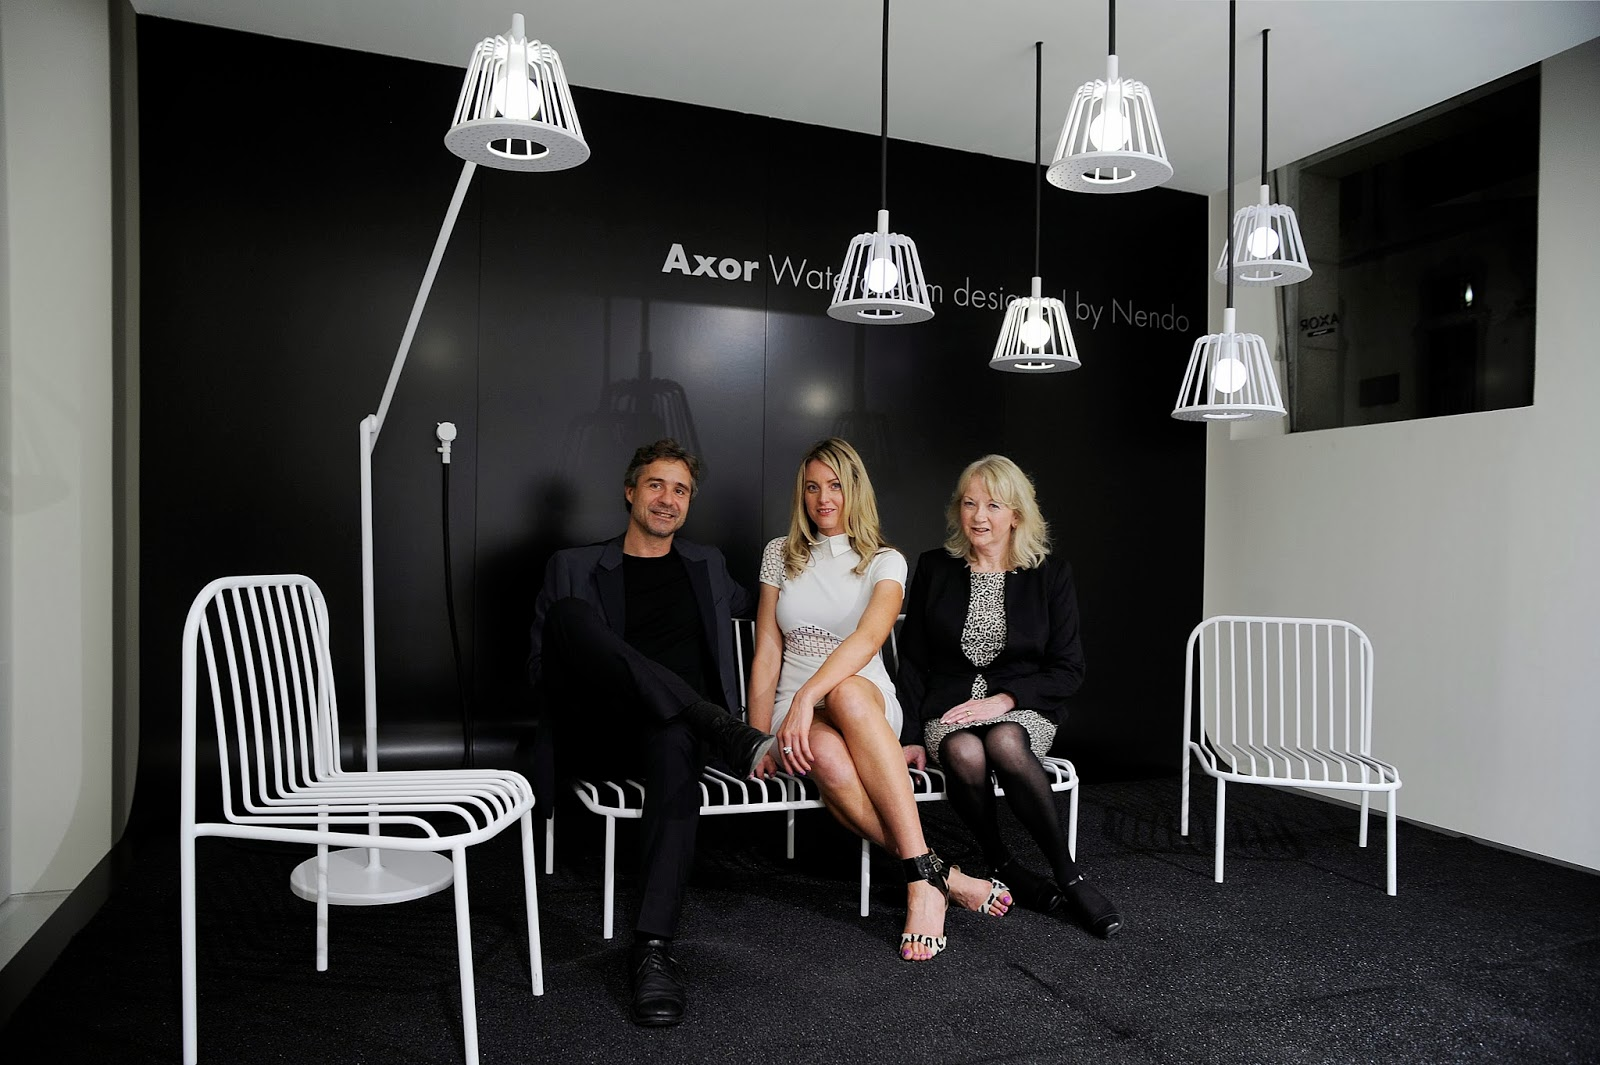 Axor opens new DURINIQUINDICI showroom in Milan | The Designer Knowledge